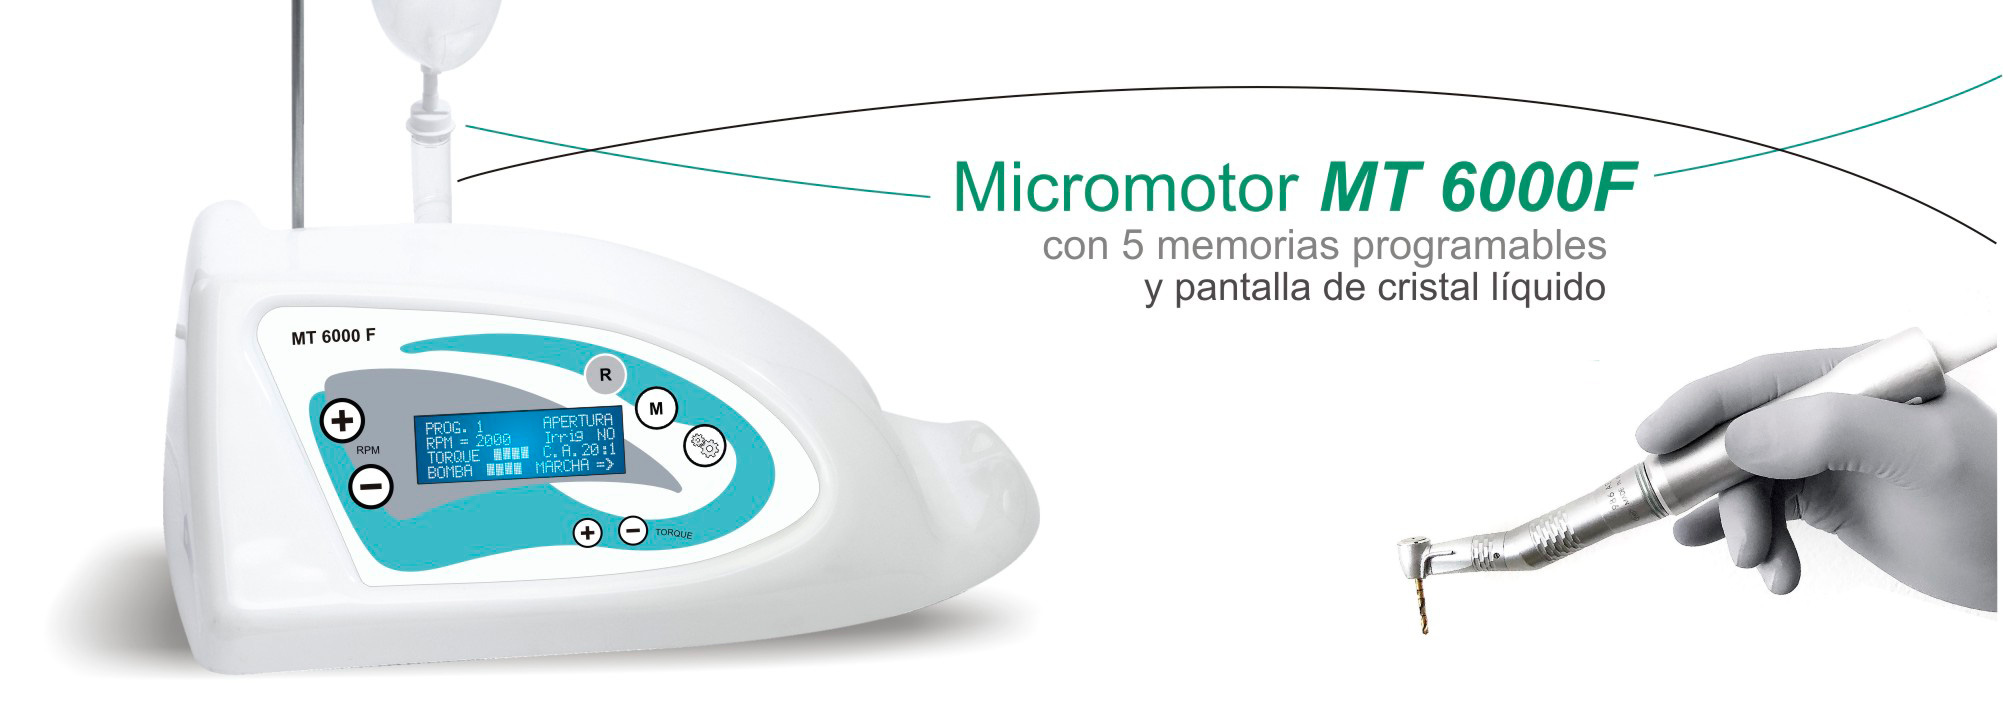 Micromotores implantes dentales